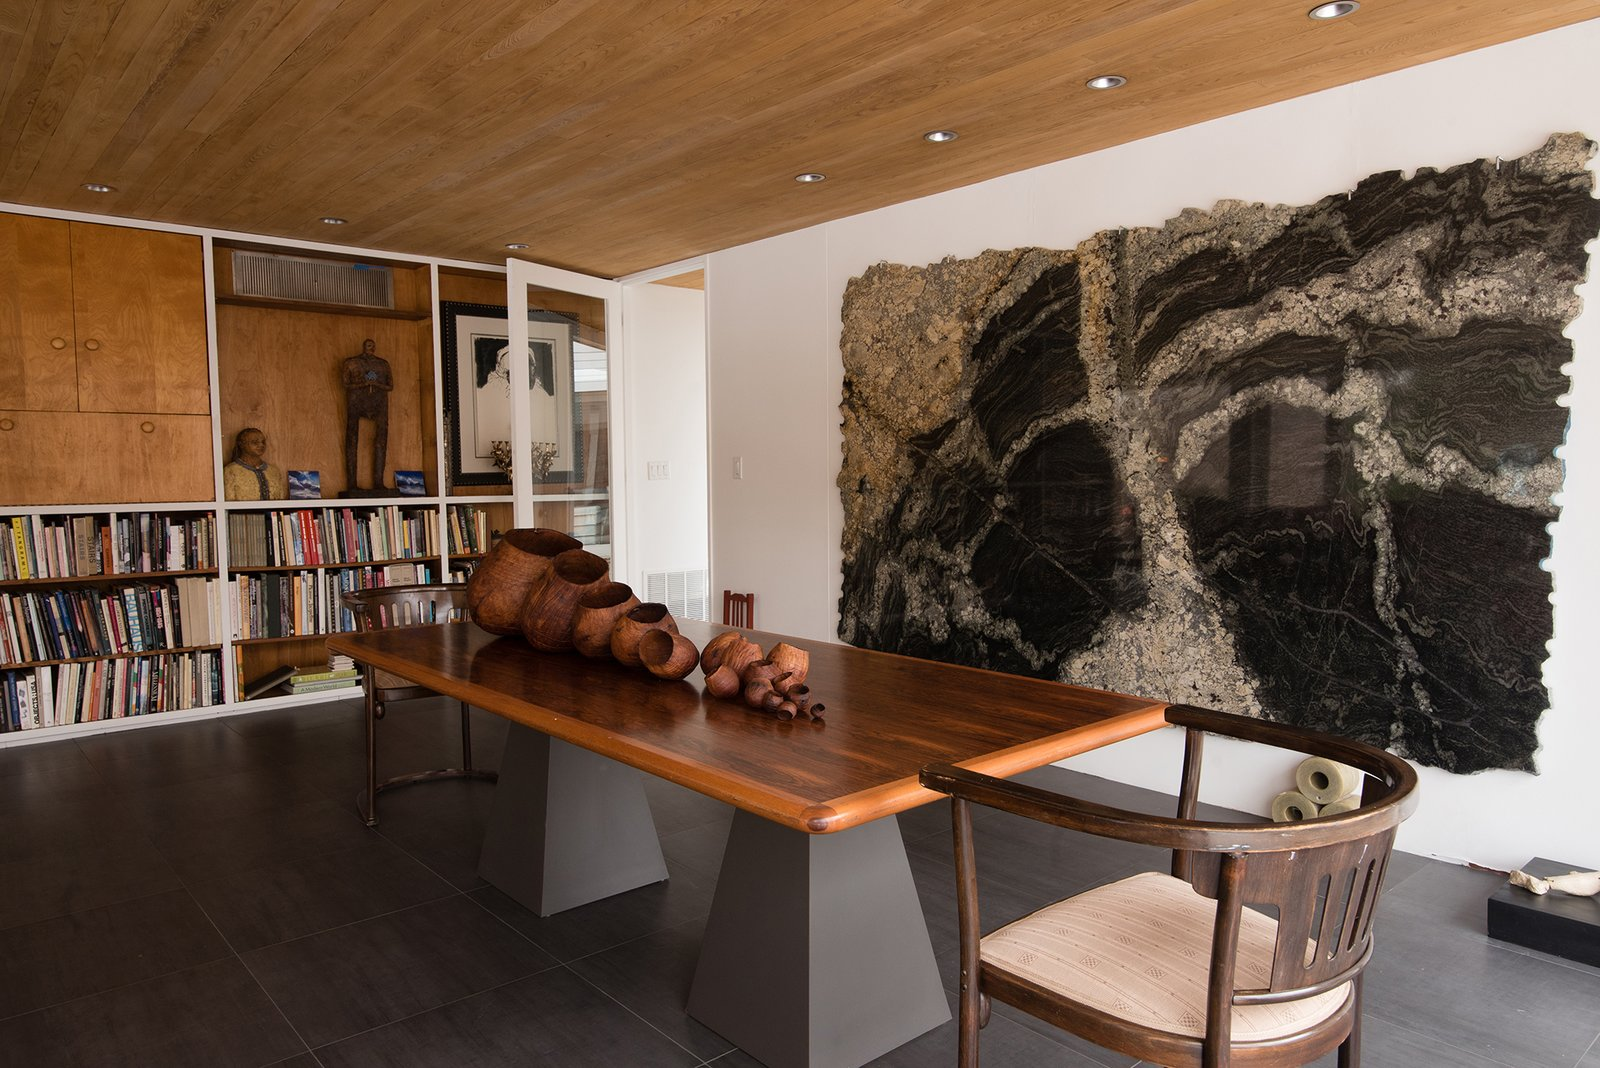 Dining, Table, Slate, Chair, Recessed, and Shelves The classic midcentury design becomes a natural setting for the owner's extensive art collection.  Best Dining Shelves Table Slate Photos from Snag This Midcentury Gem by Marcel Breuer That's Listed For $999K